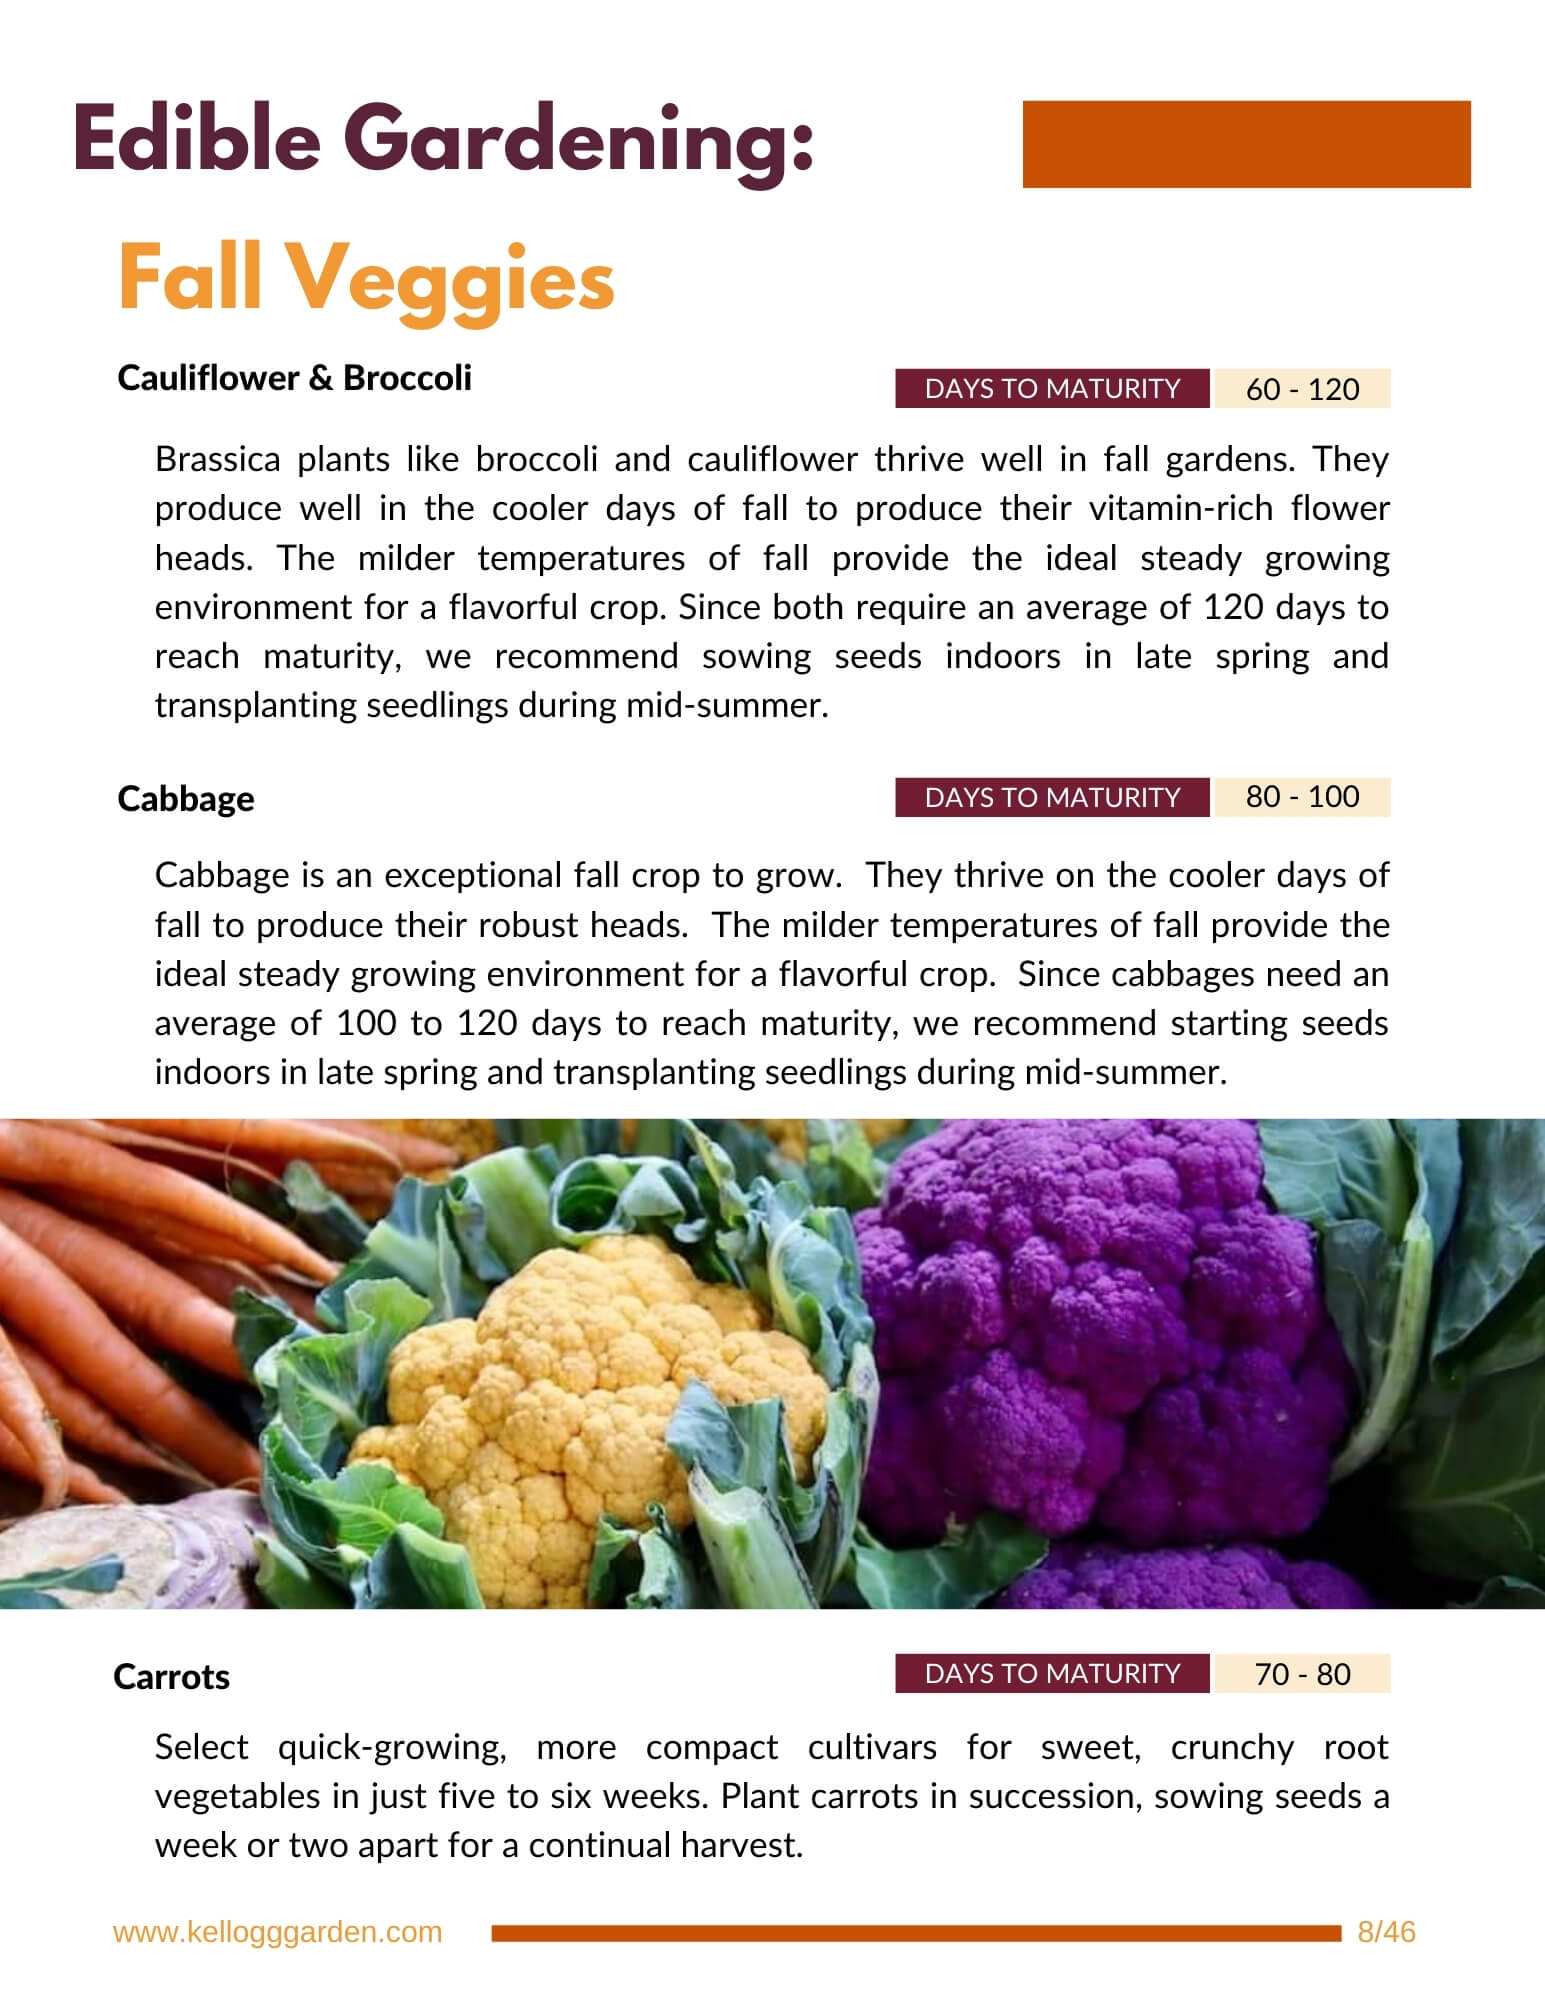 Fall veggies page from fall and winter gardening guide